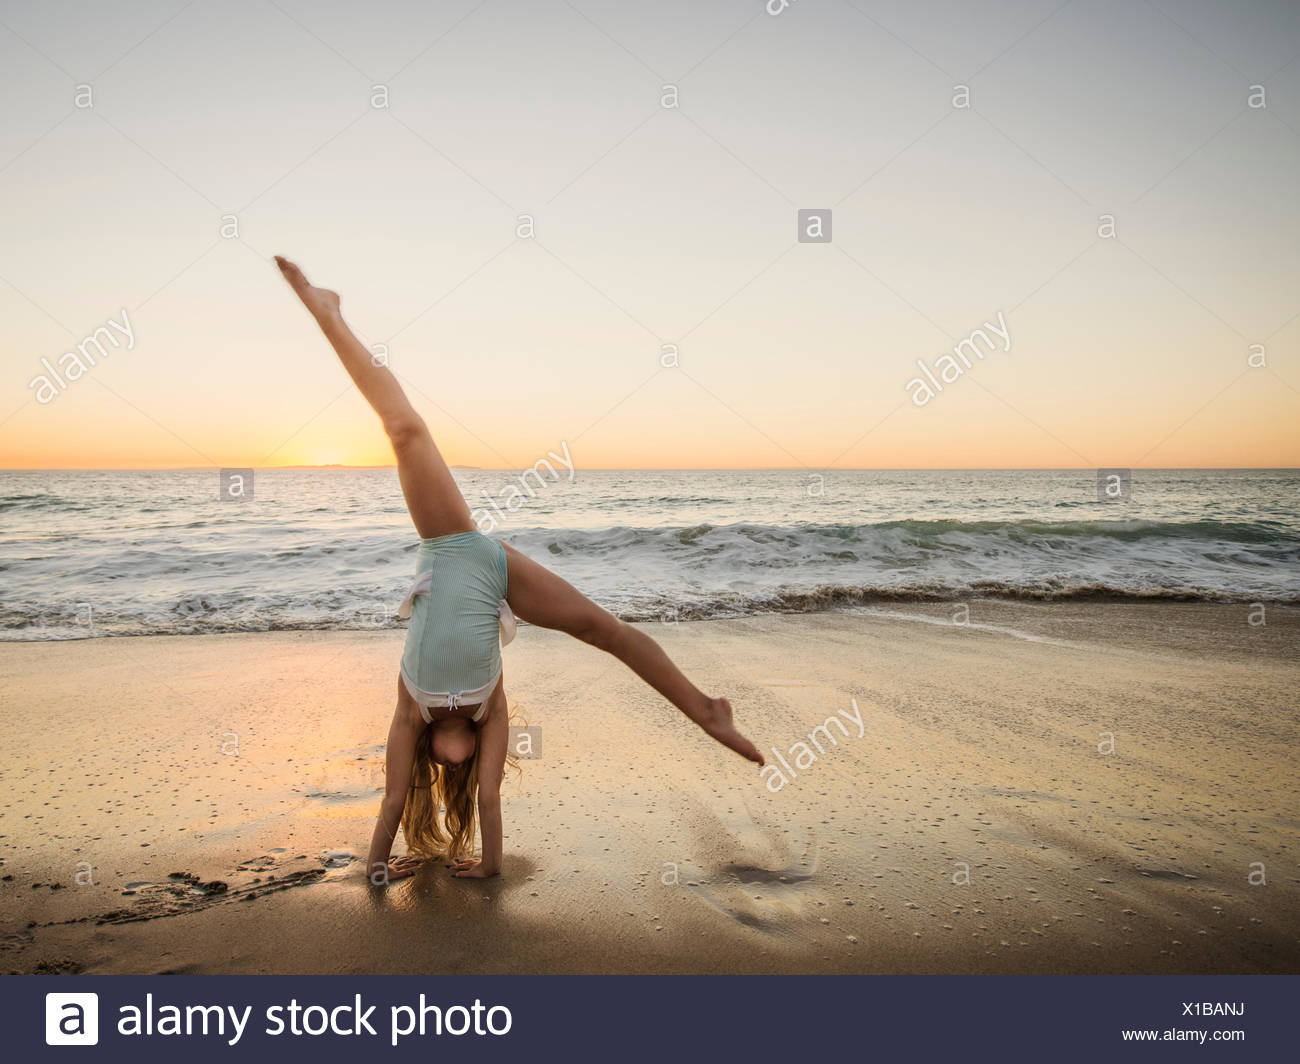 Girl 8 9 Doing Cartwheel On Beach Stock Photo 276230462 Alamy